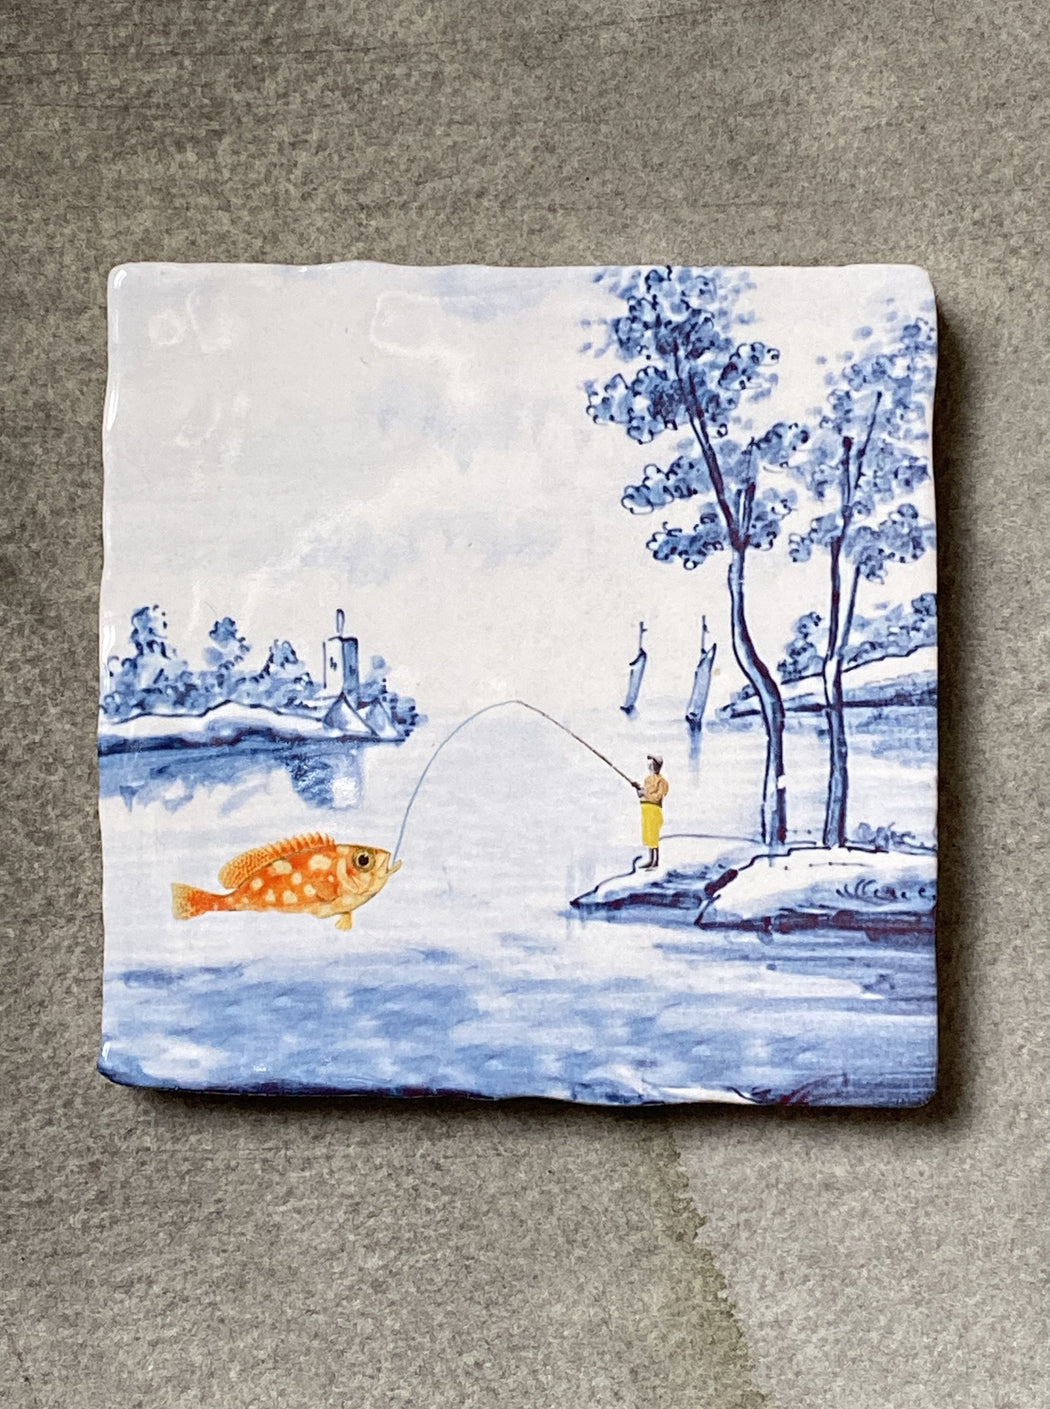 """Catching The Big Fish"" Story Tile"